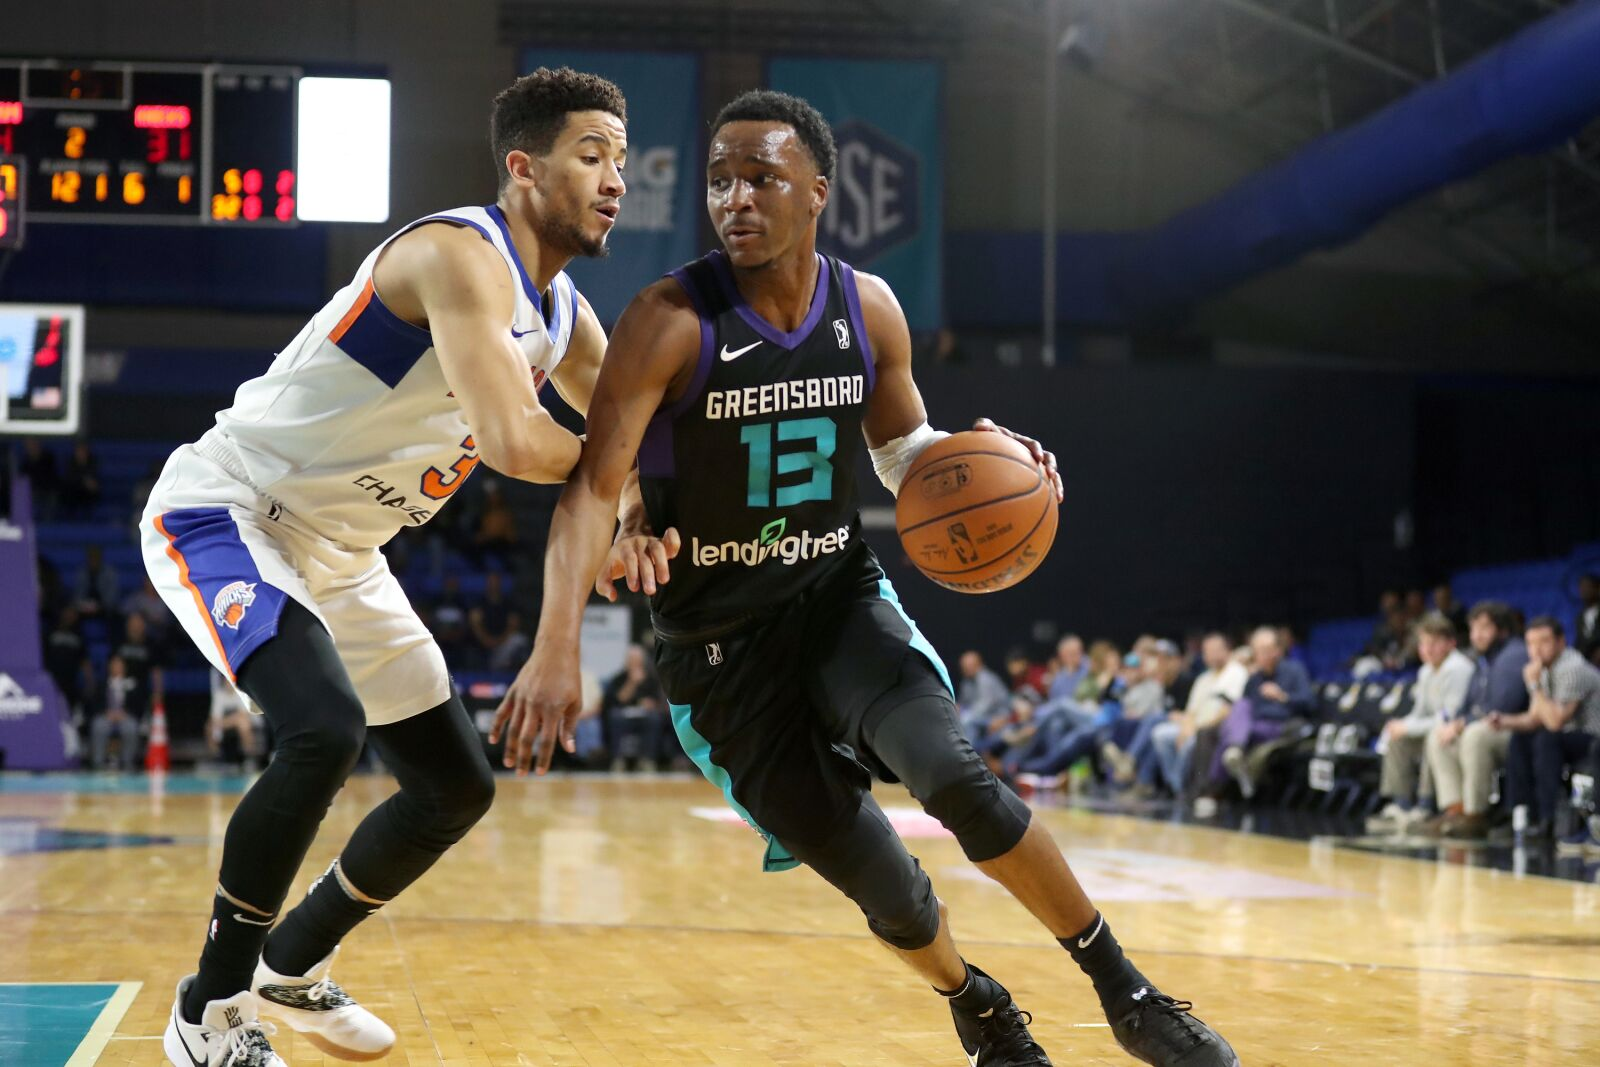 Charlotte Hornets Two-Way Tracker: Chealey balling for Swarm